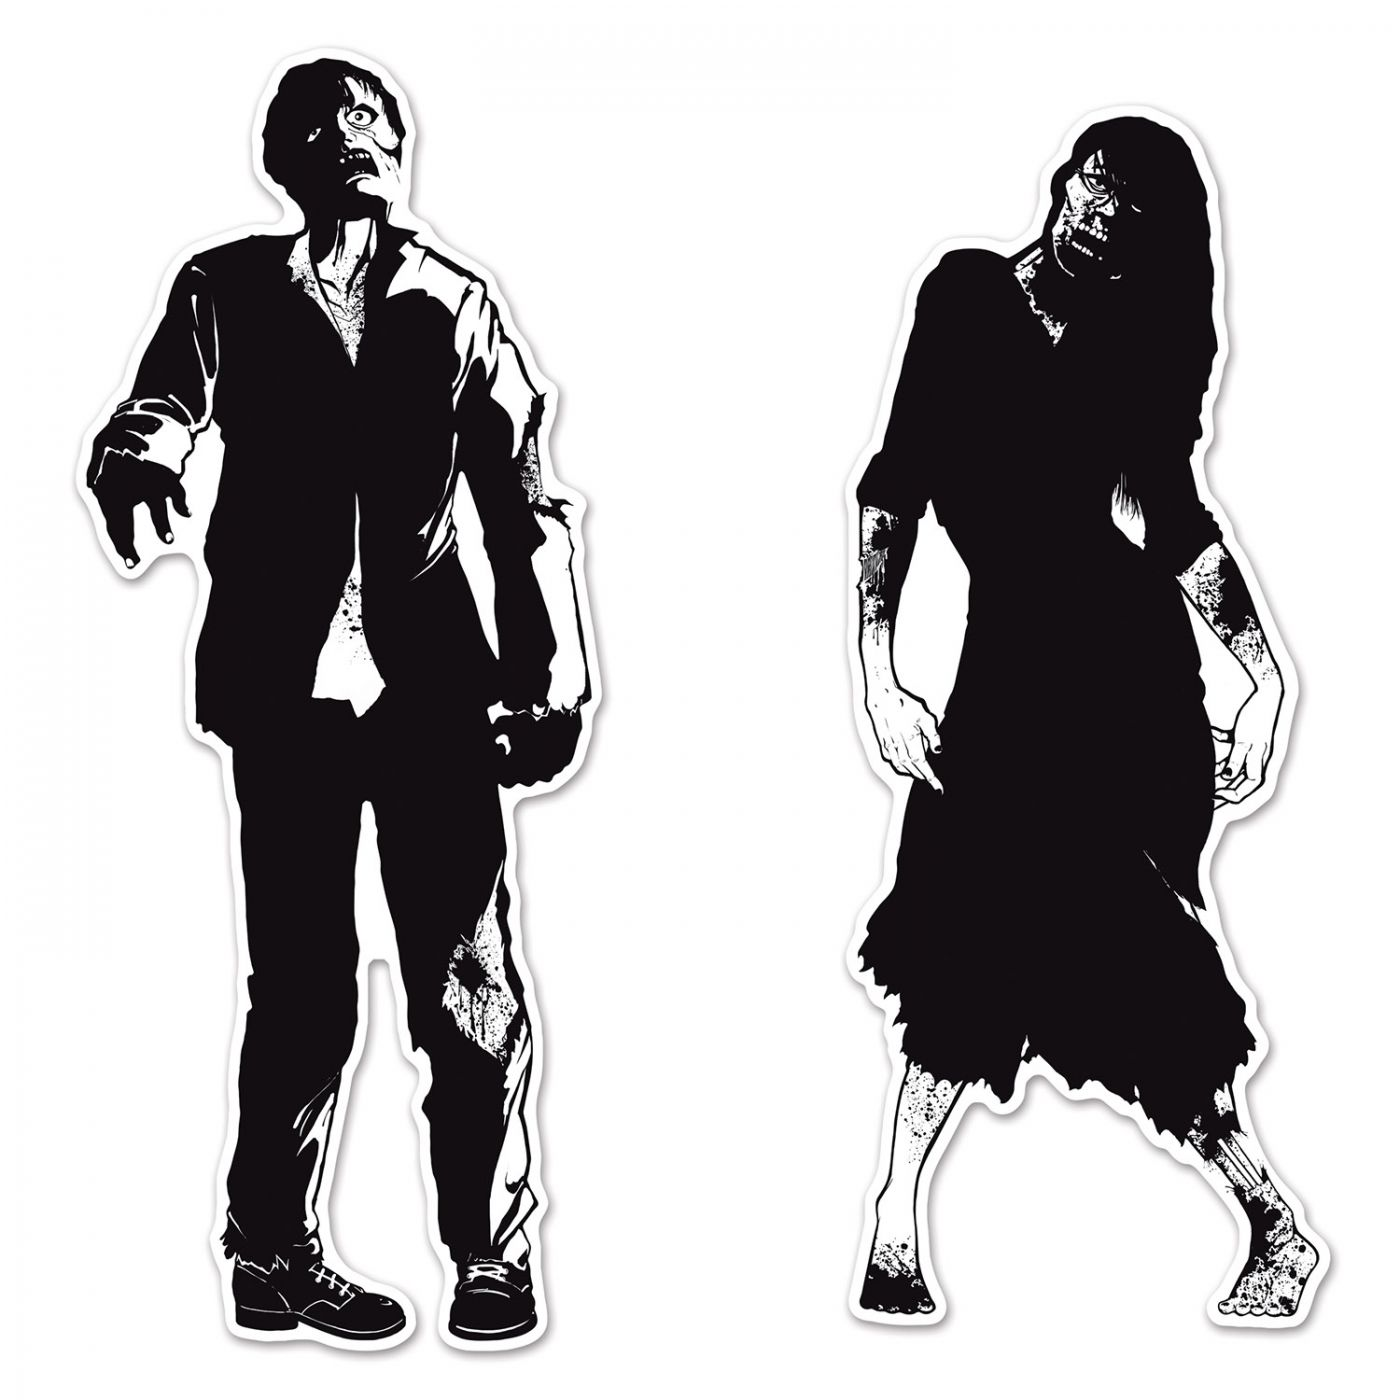 Zombie Silhouettes image